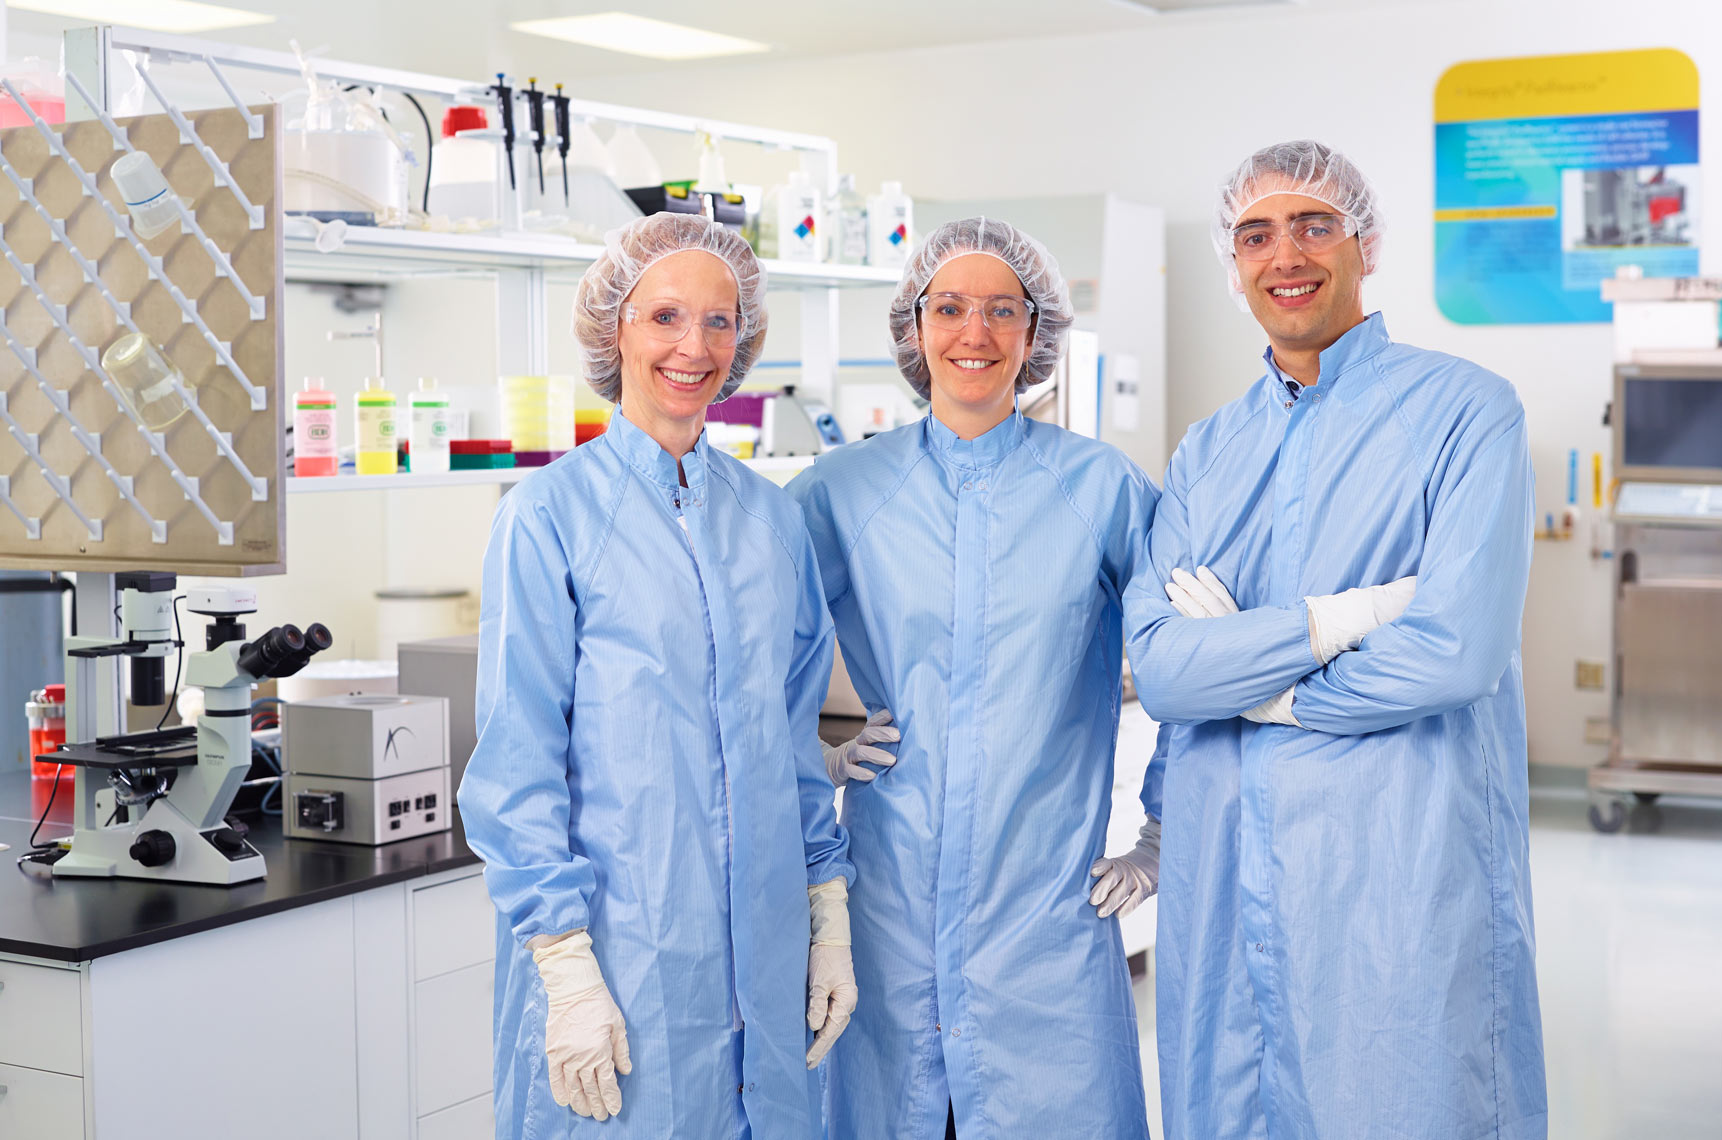 ATMI/lab techs/standing looking at camera/medical photography